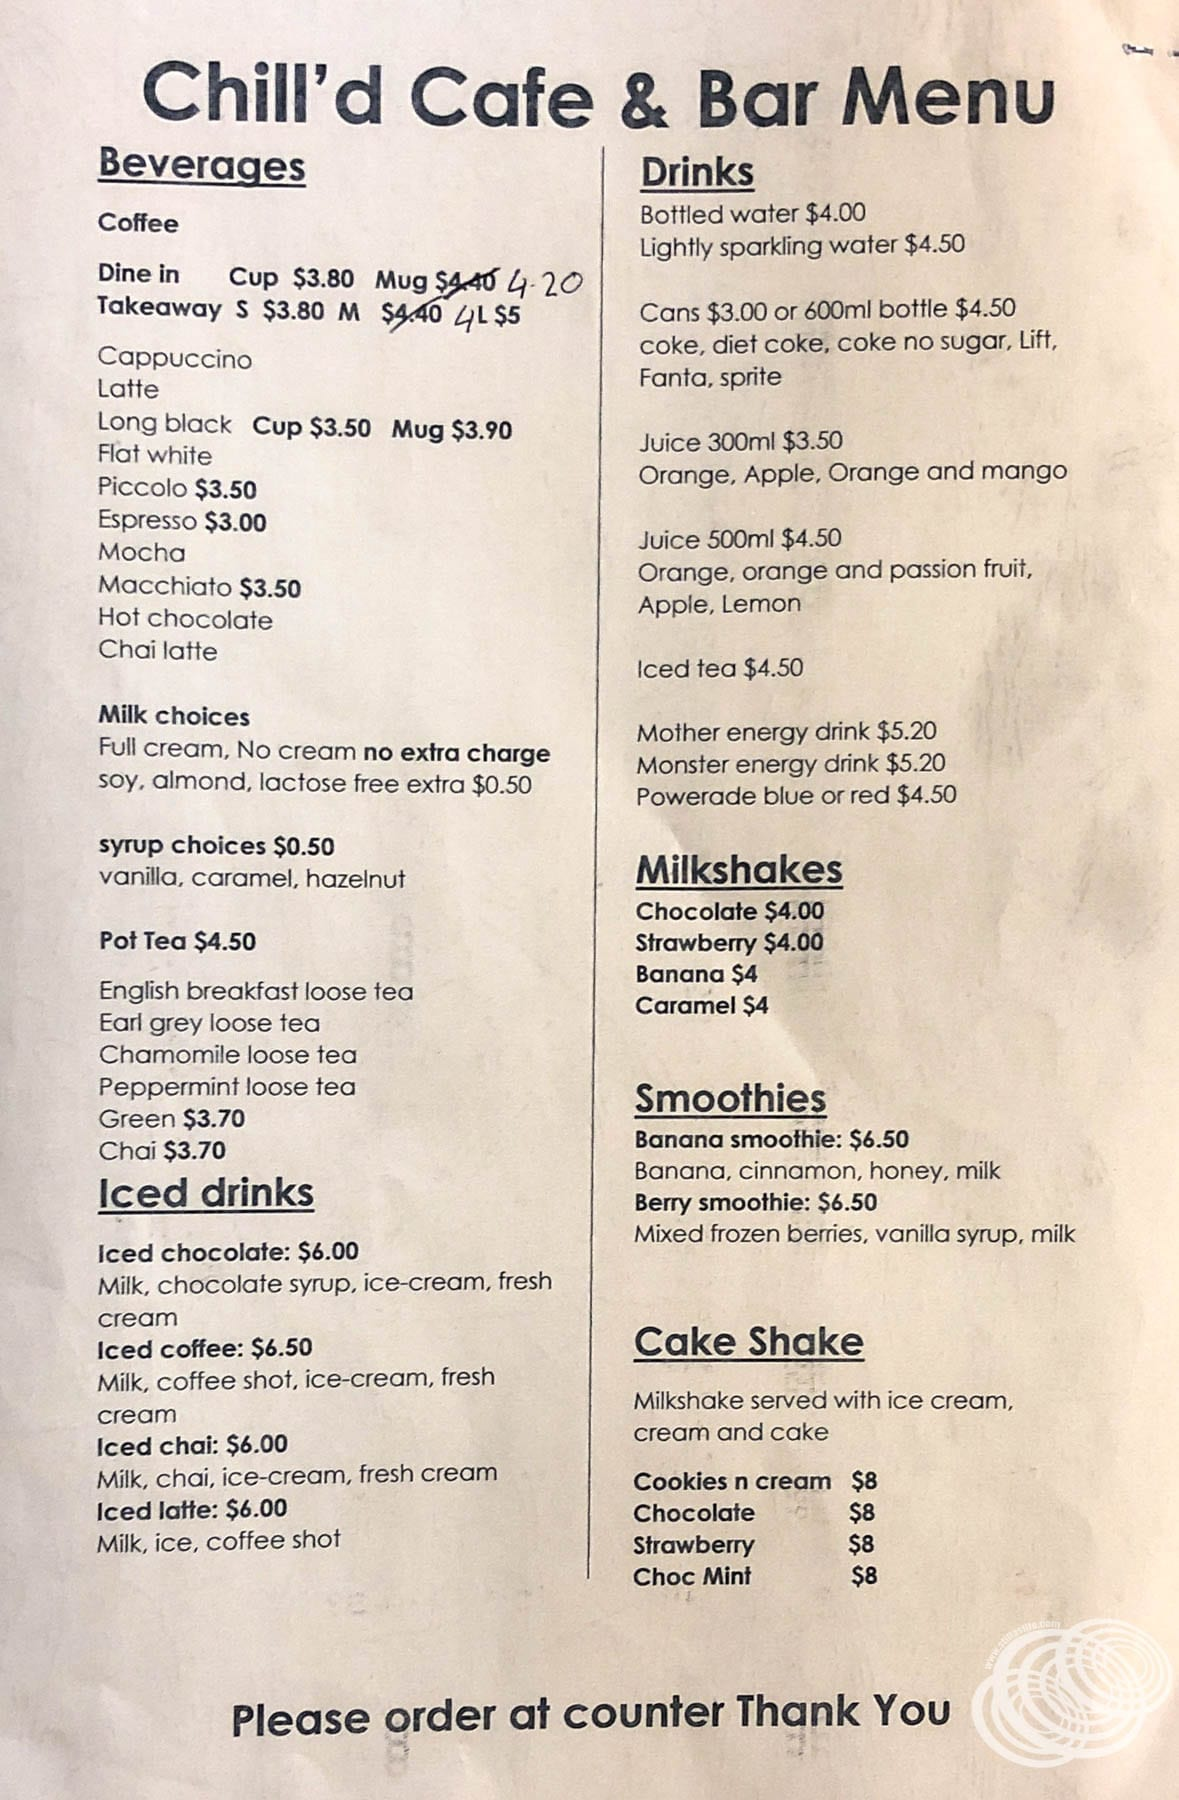 Chill'd Cafe and Bar Menu - Page 4